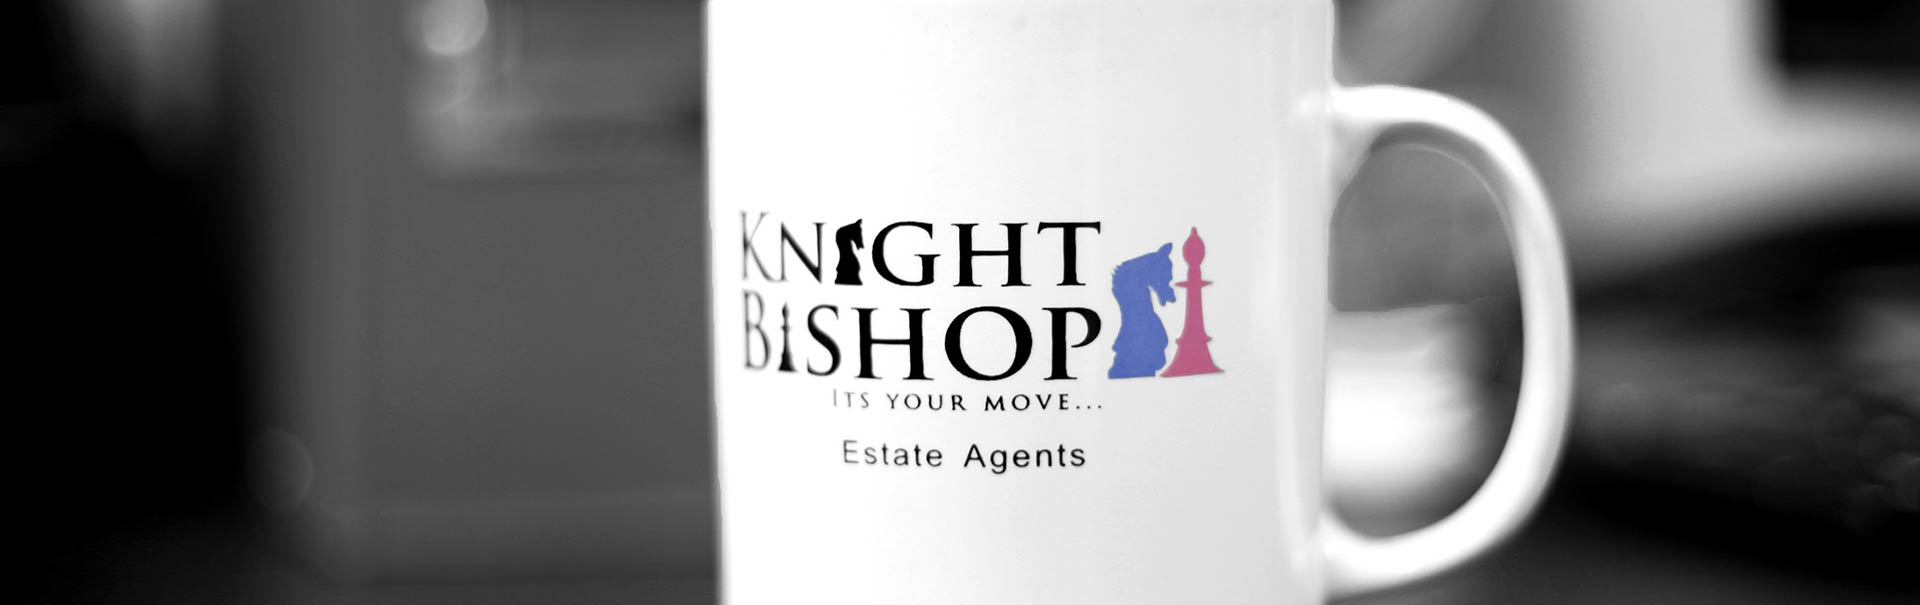 Knight Bishop Estate Agents